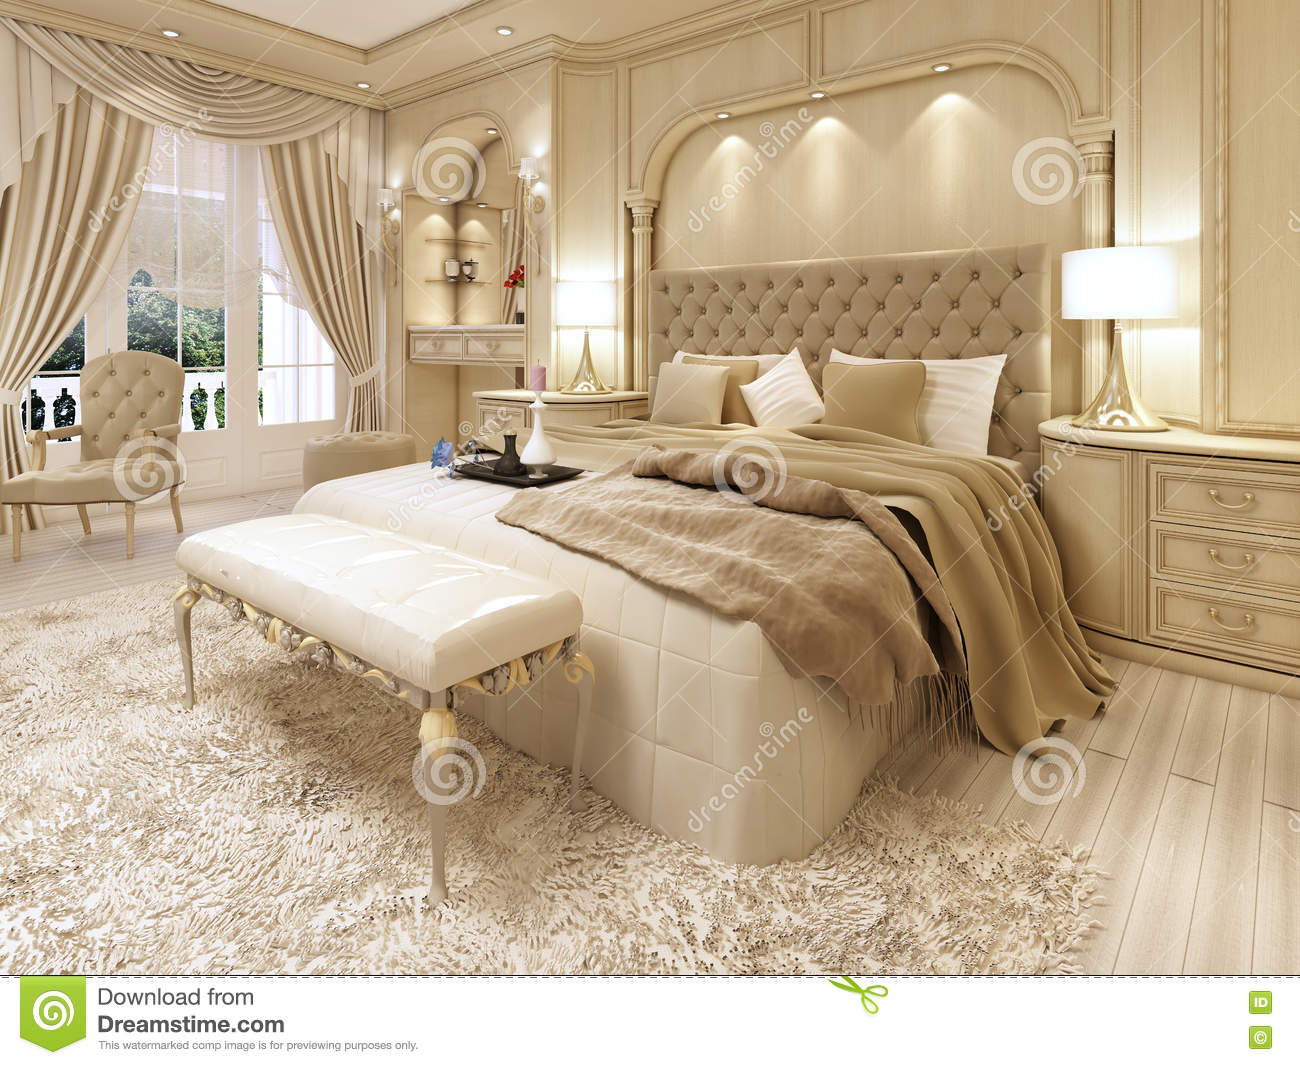 Luxury Bed In A Large Neoclassical Bedroom With Decorative